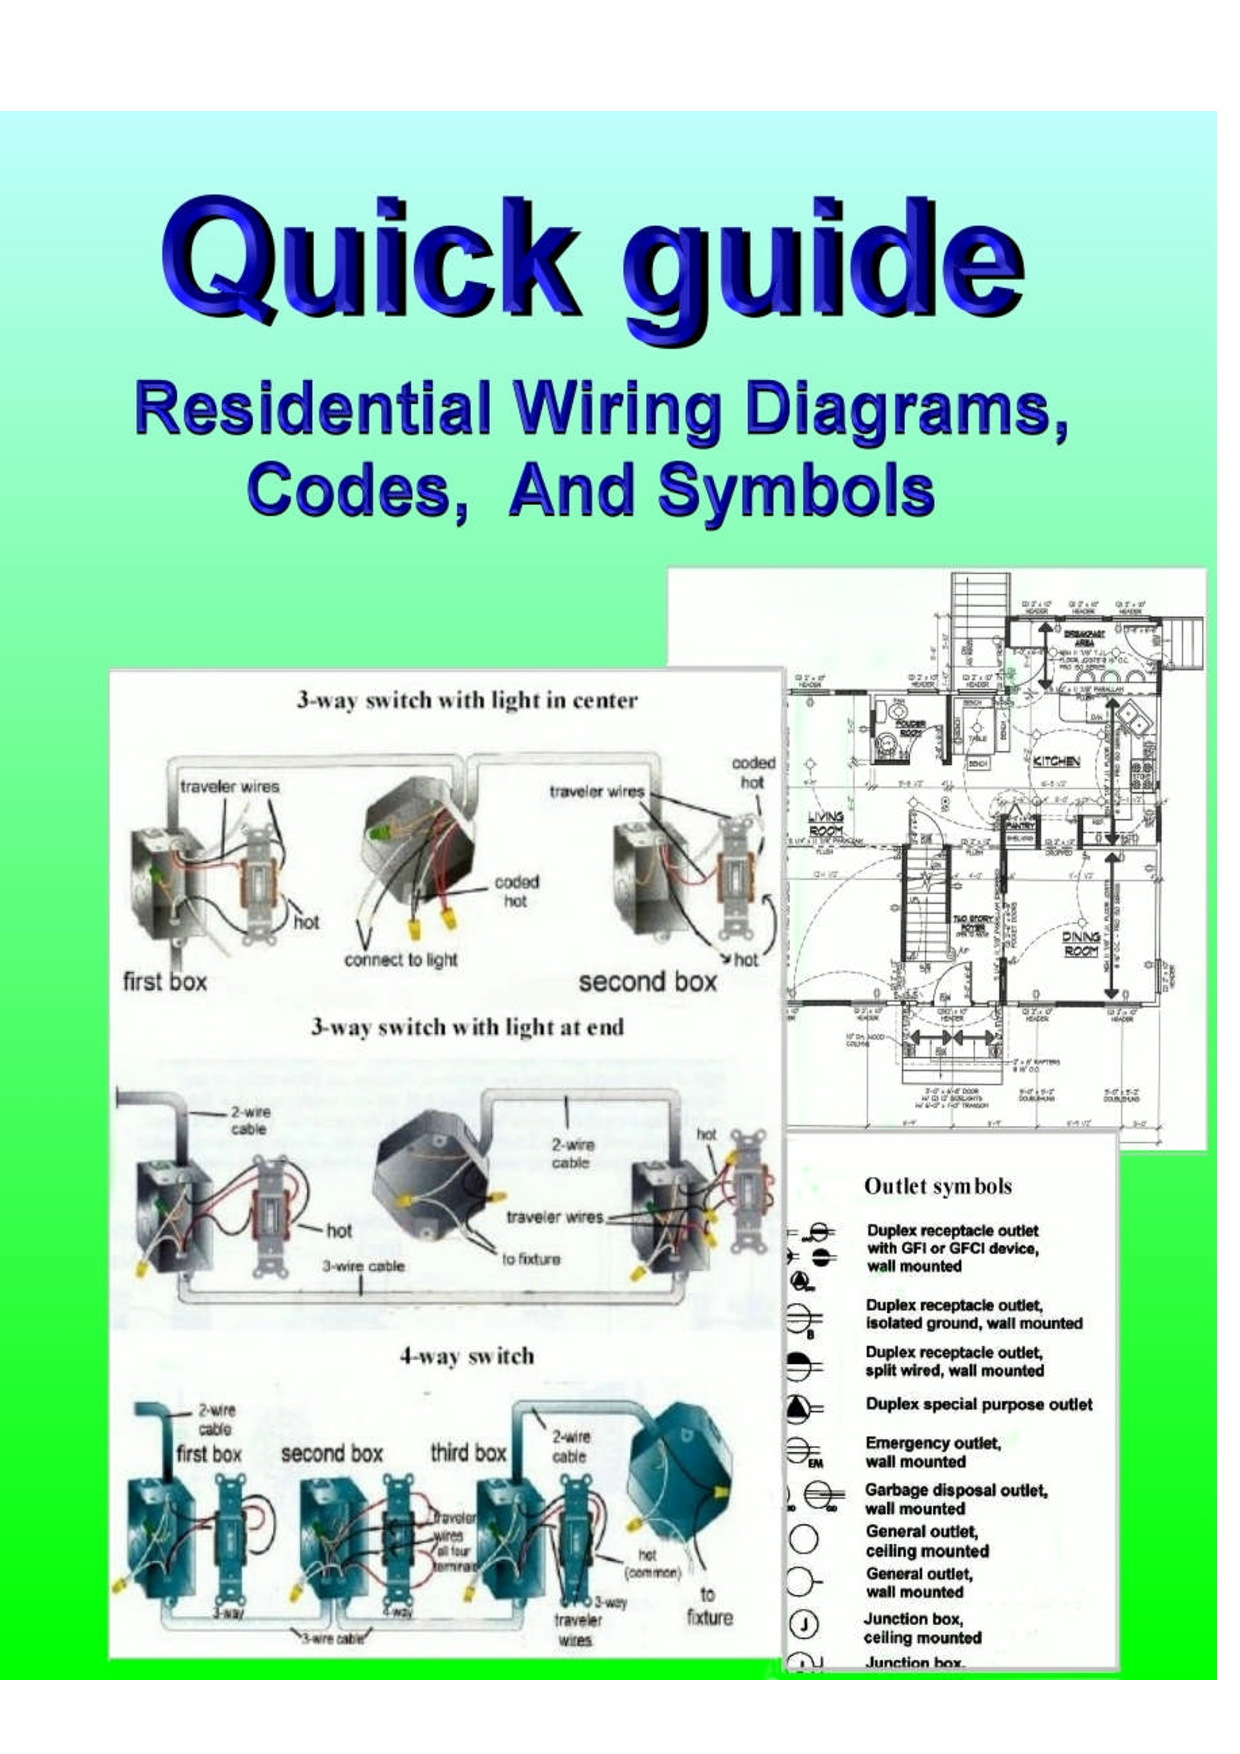 Peachy Residential Electric Wiring Diagrams Wiring Diagram Wiring Database Mangnorabwedabyuccorg